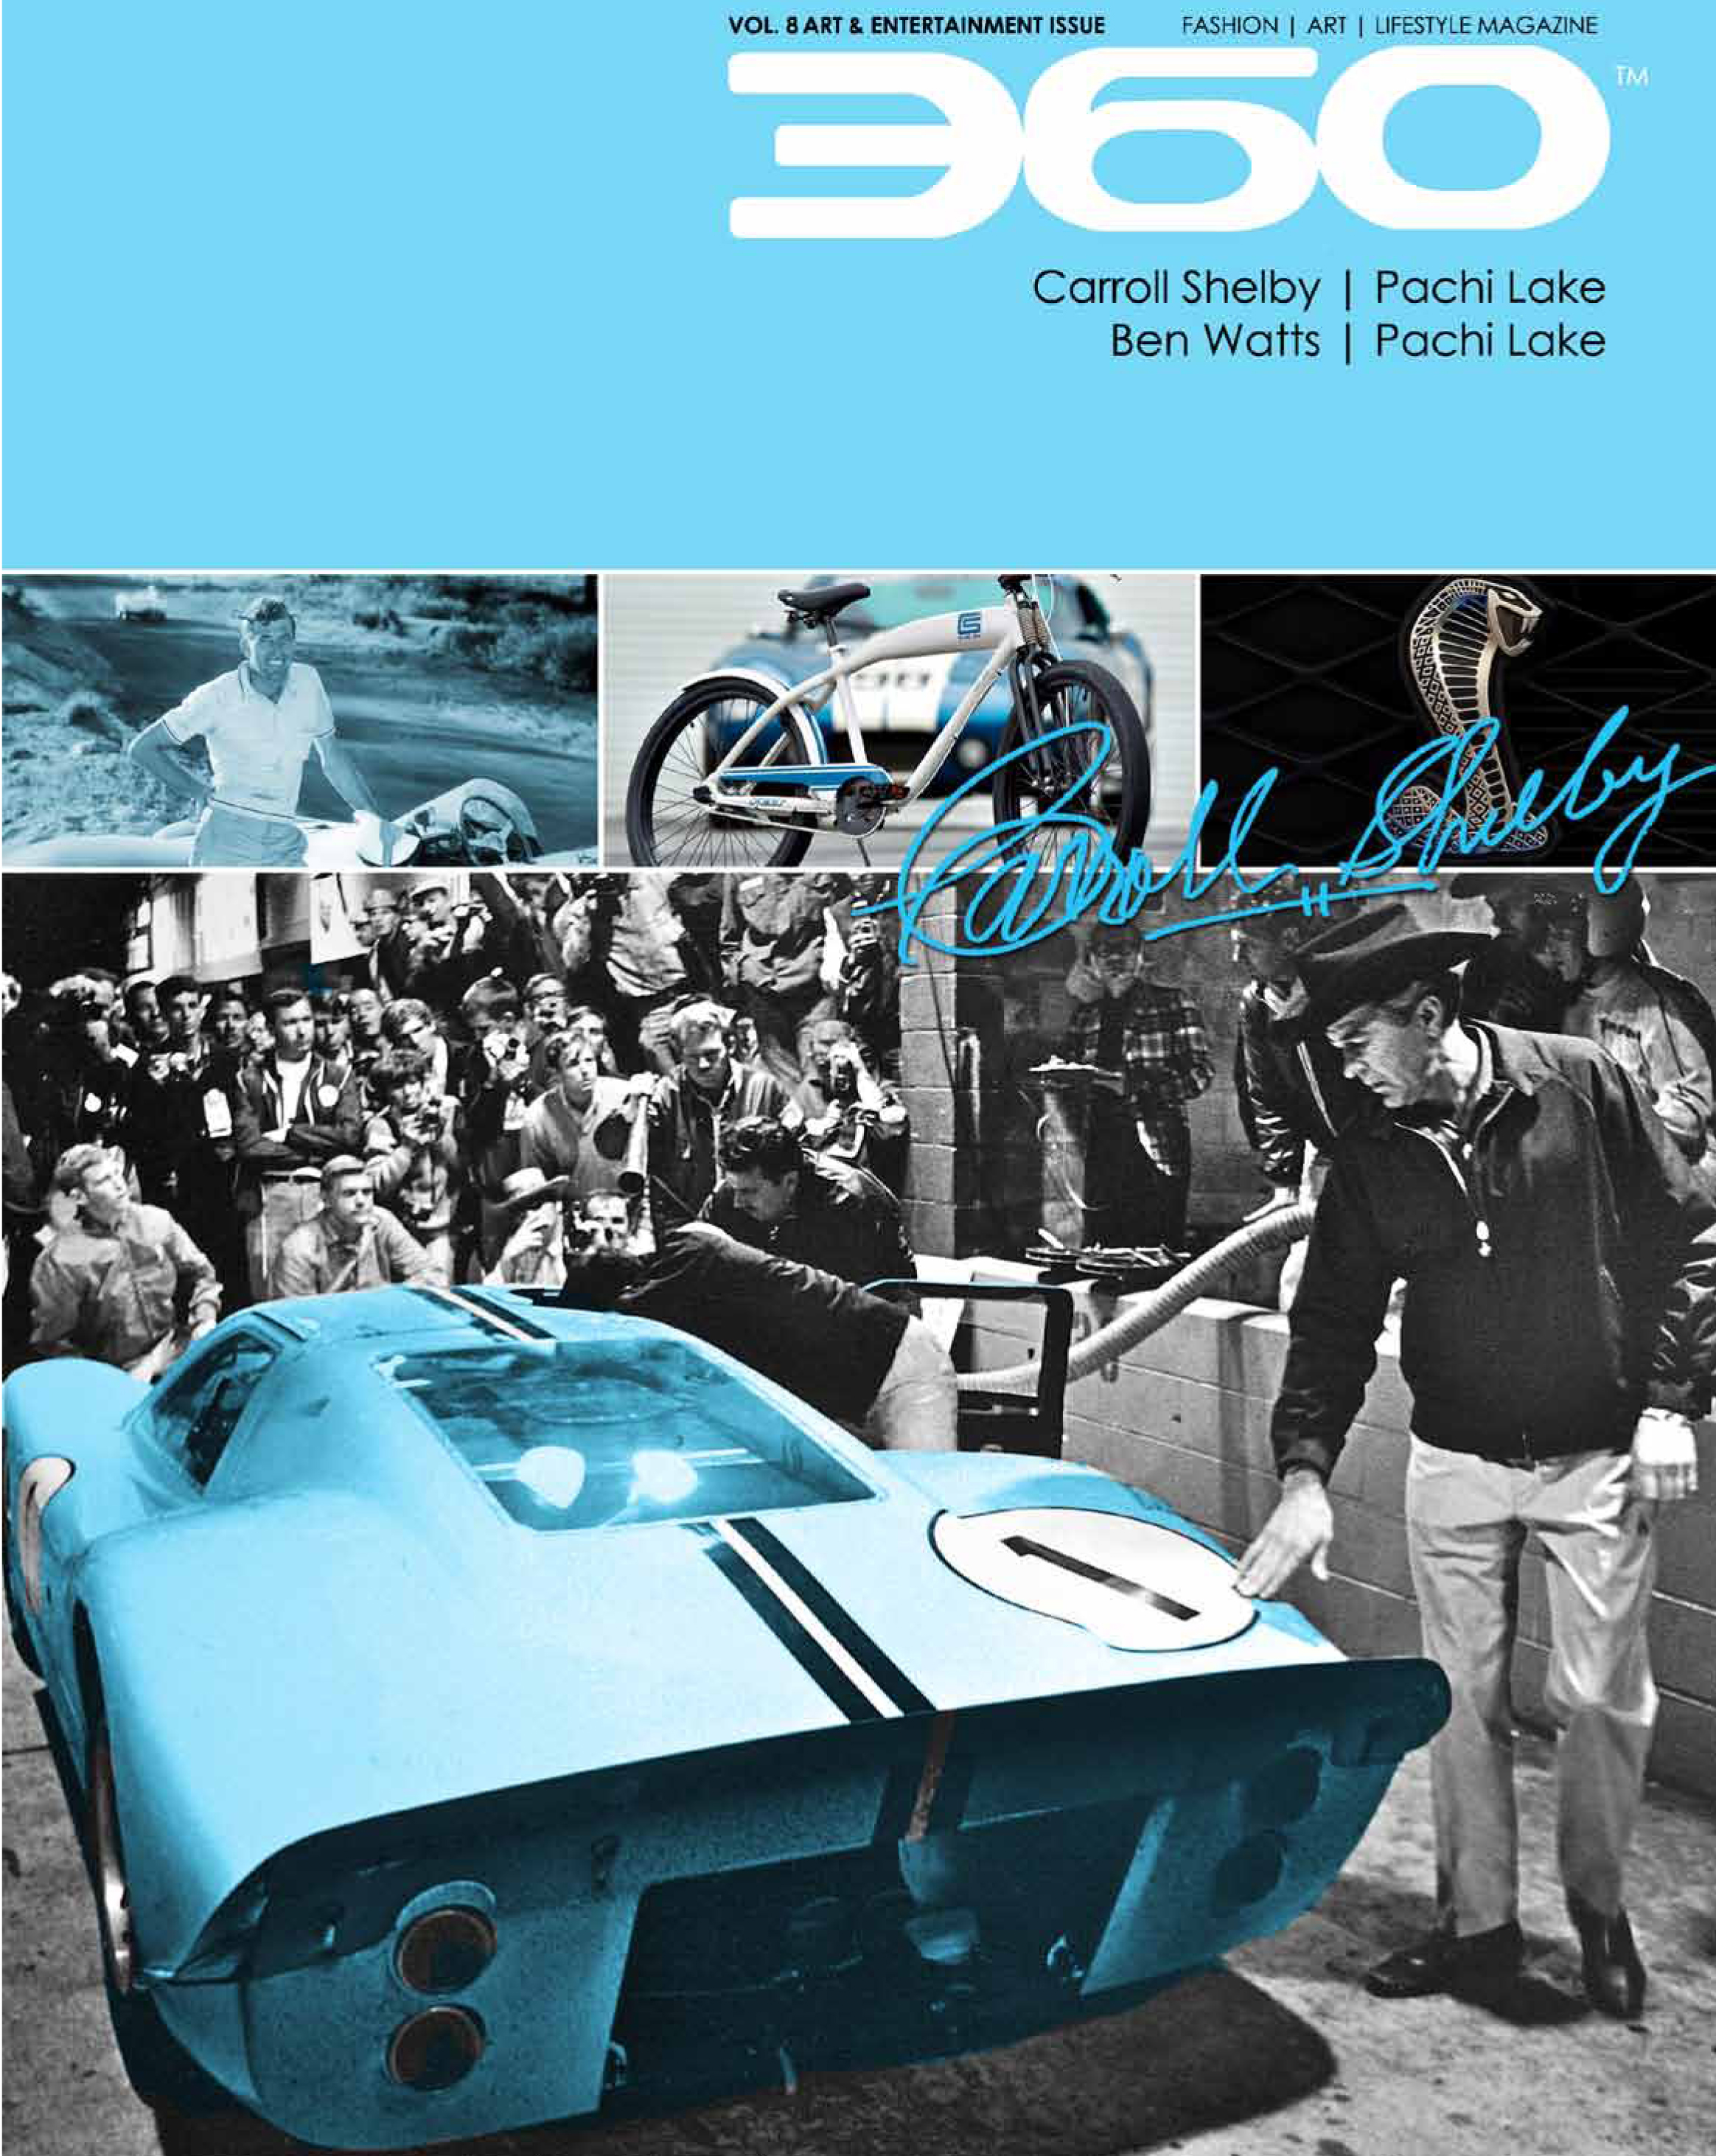 360 Issue 22 – Carroll Shelby